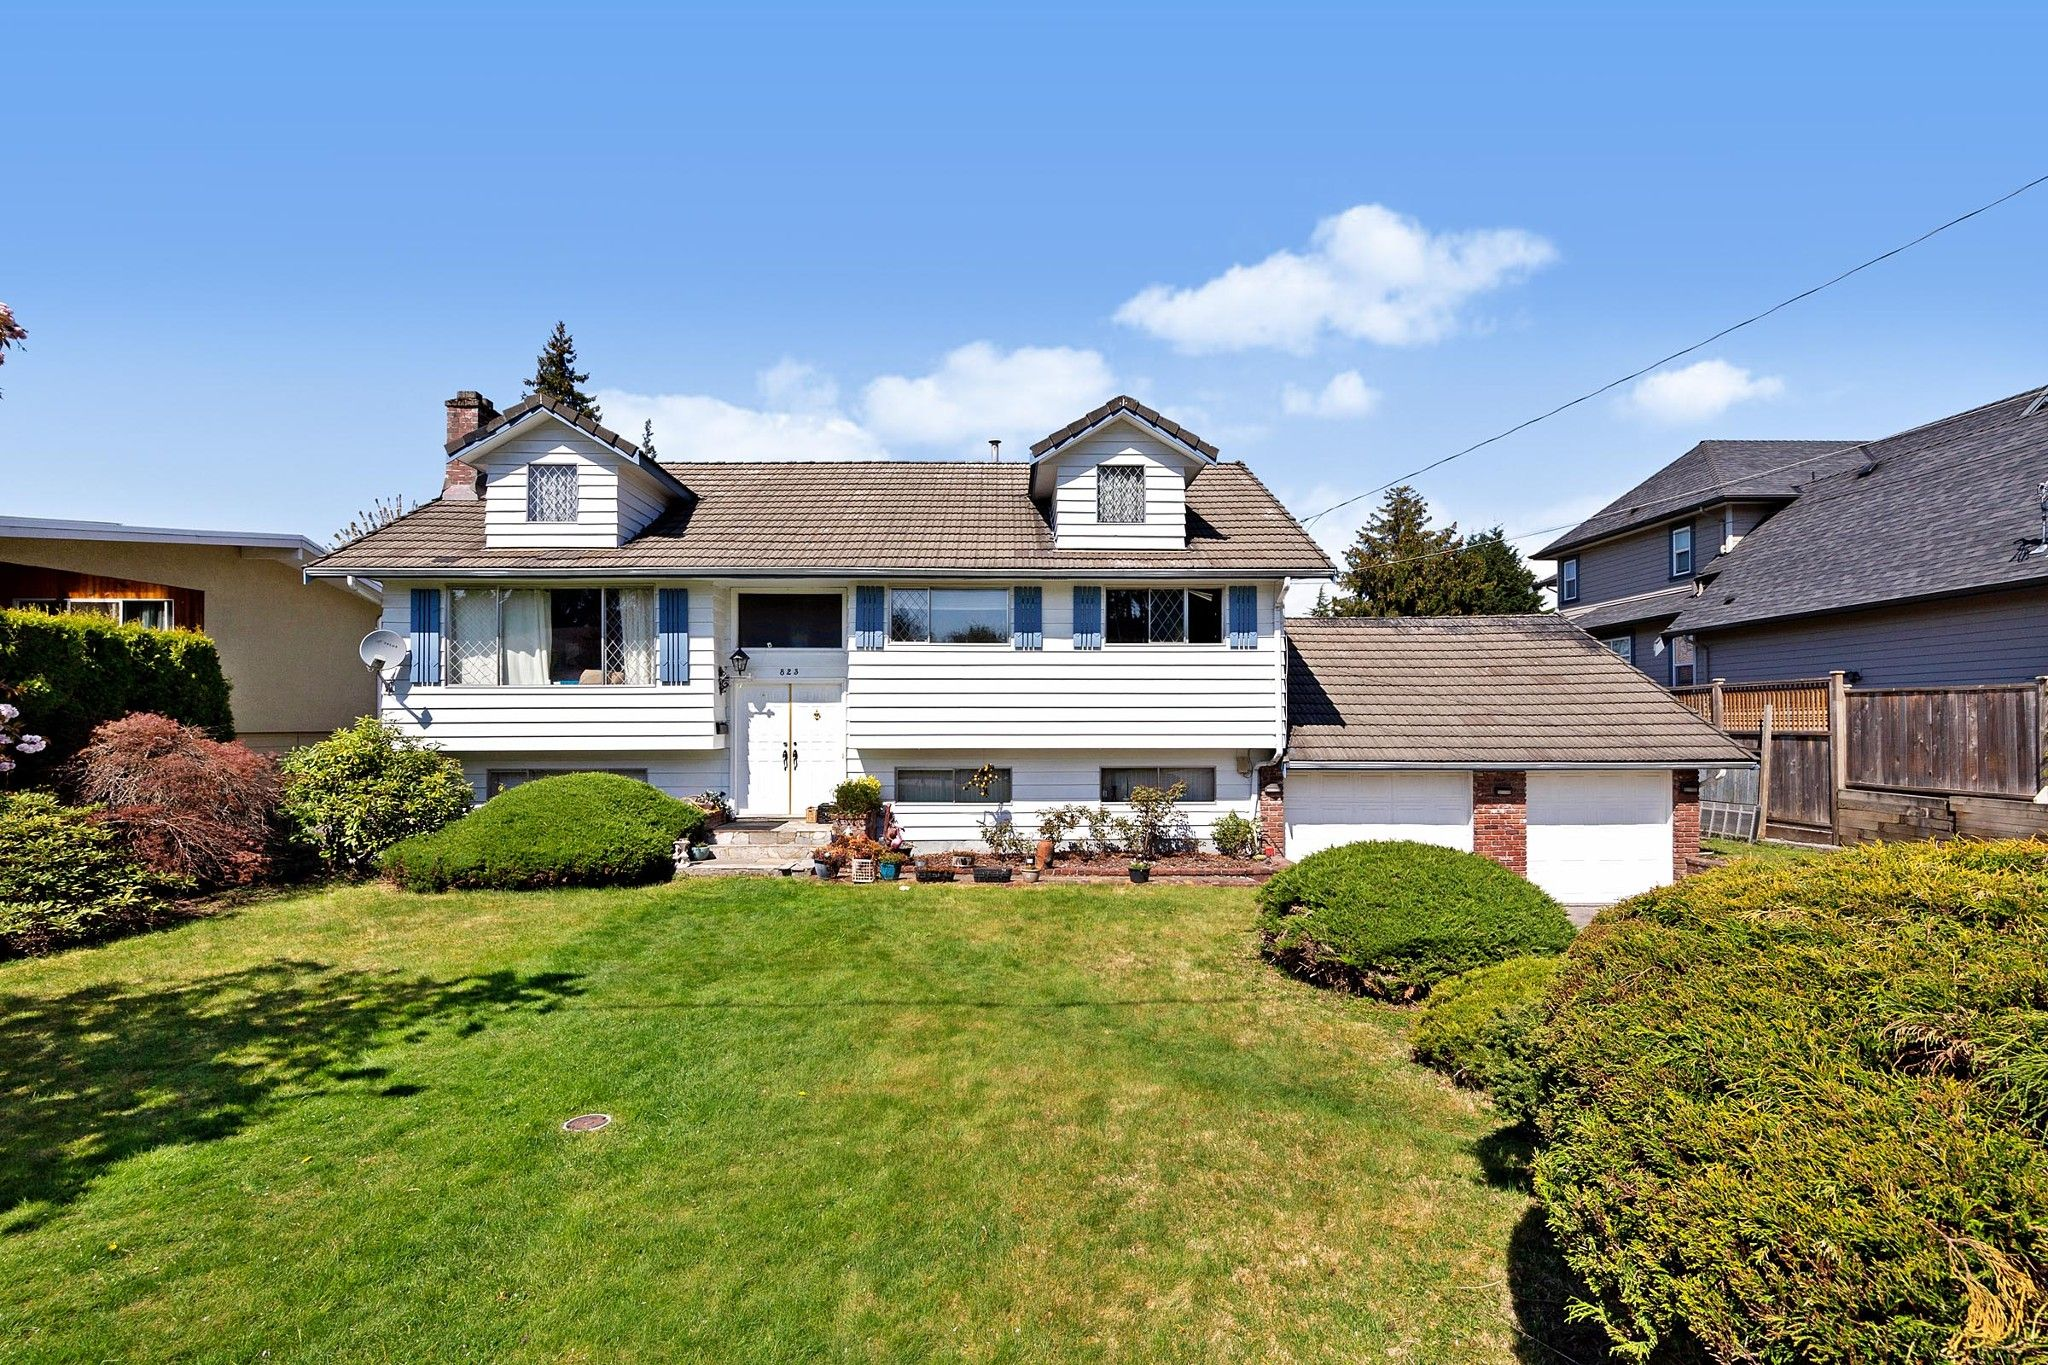 Main Photo: 823 CORNELL Avenue in Coquitlam: Coquitlam West House for sale : MLS®# R2569529